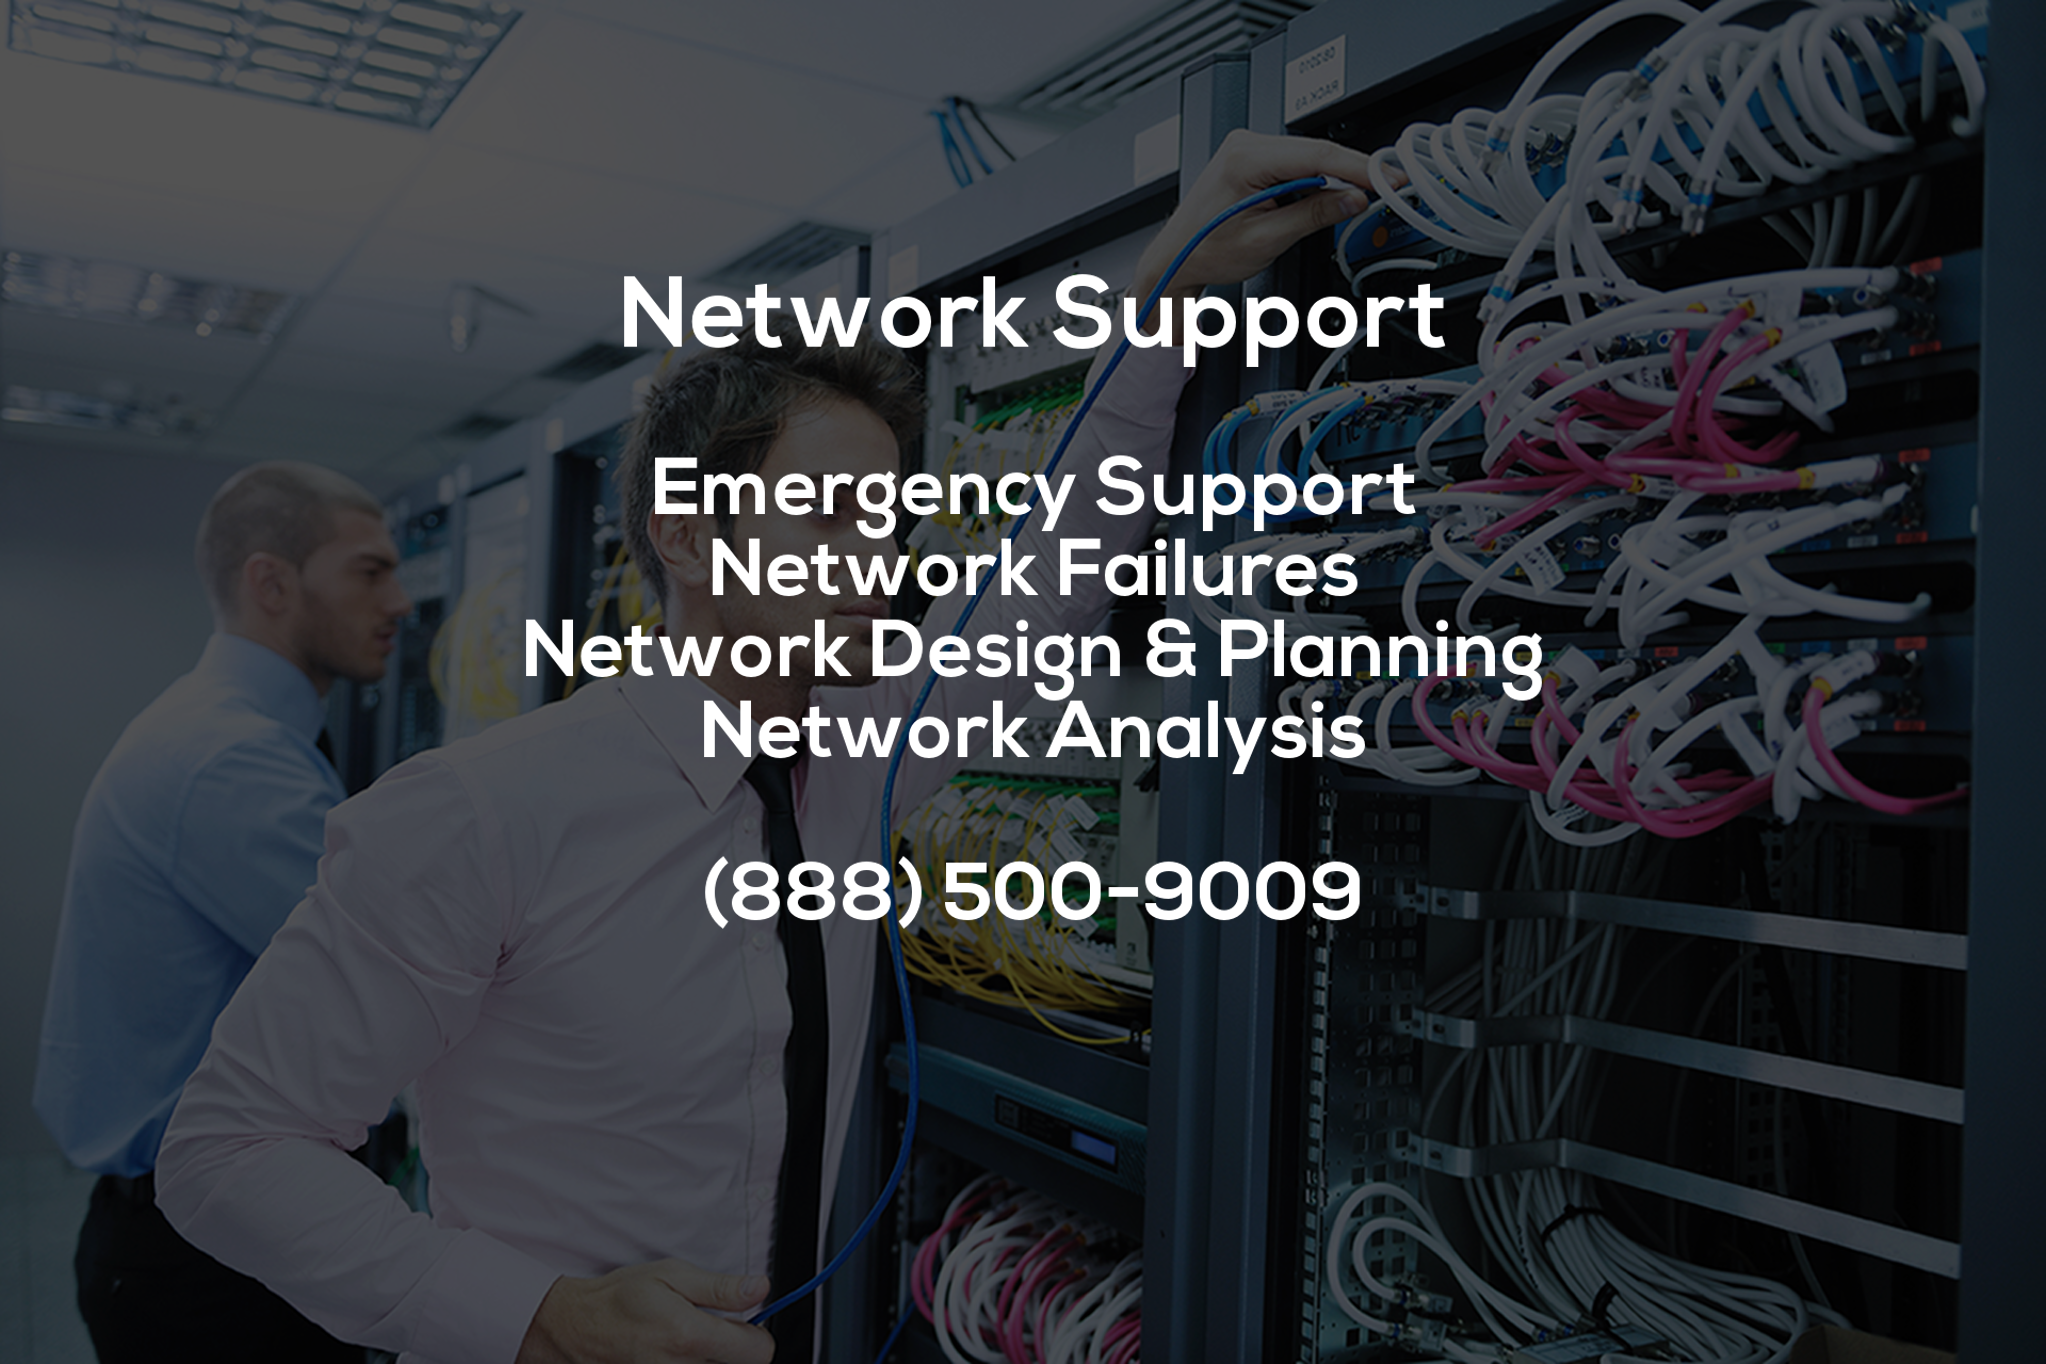 Network Support in San Bernardino CA